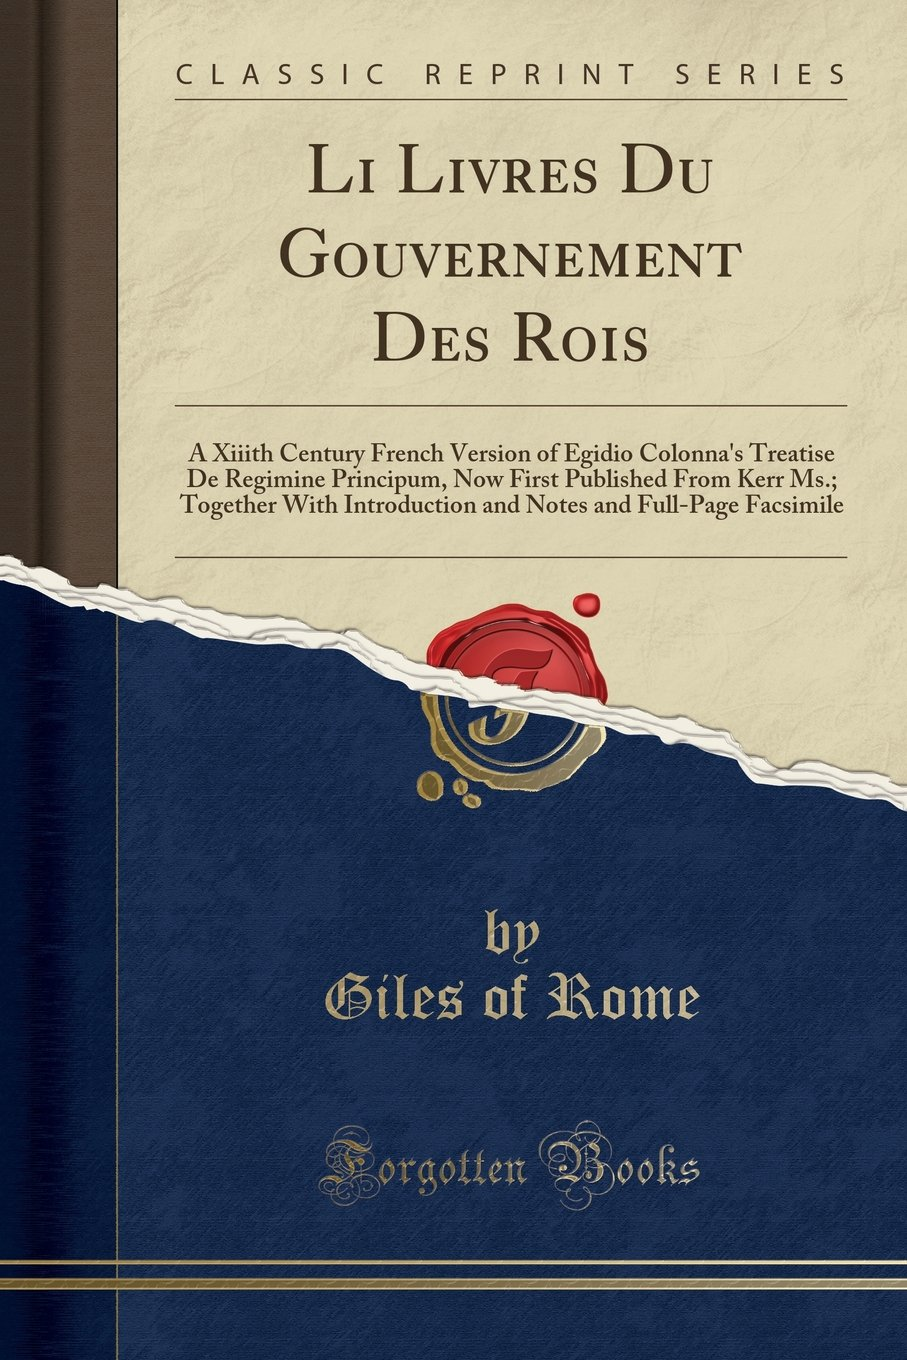 Download Li Livres Du Gouvernement Des Rois: A Xiiith Century French Version of Egidio Colonna's Treatise De Regimine Principum, Now First Published From Kerr ... and Full-Page Facsimile (Classic Reprint) pdf